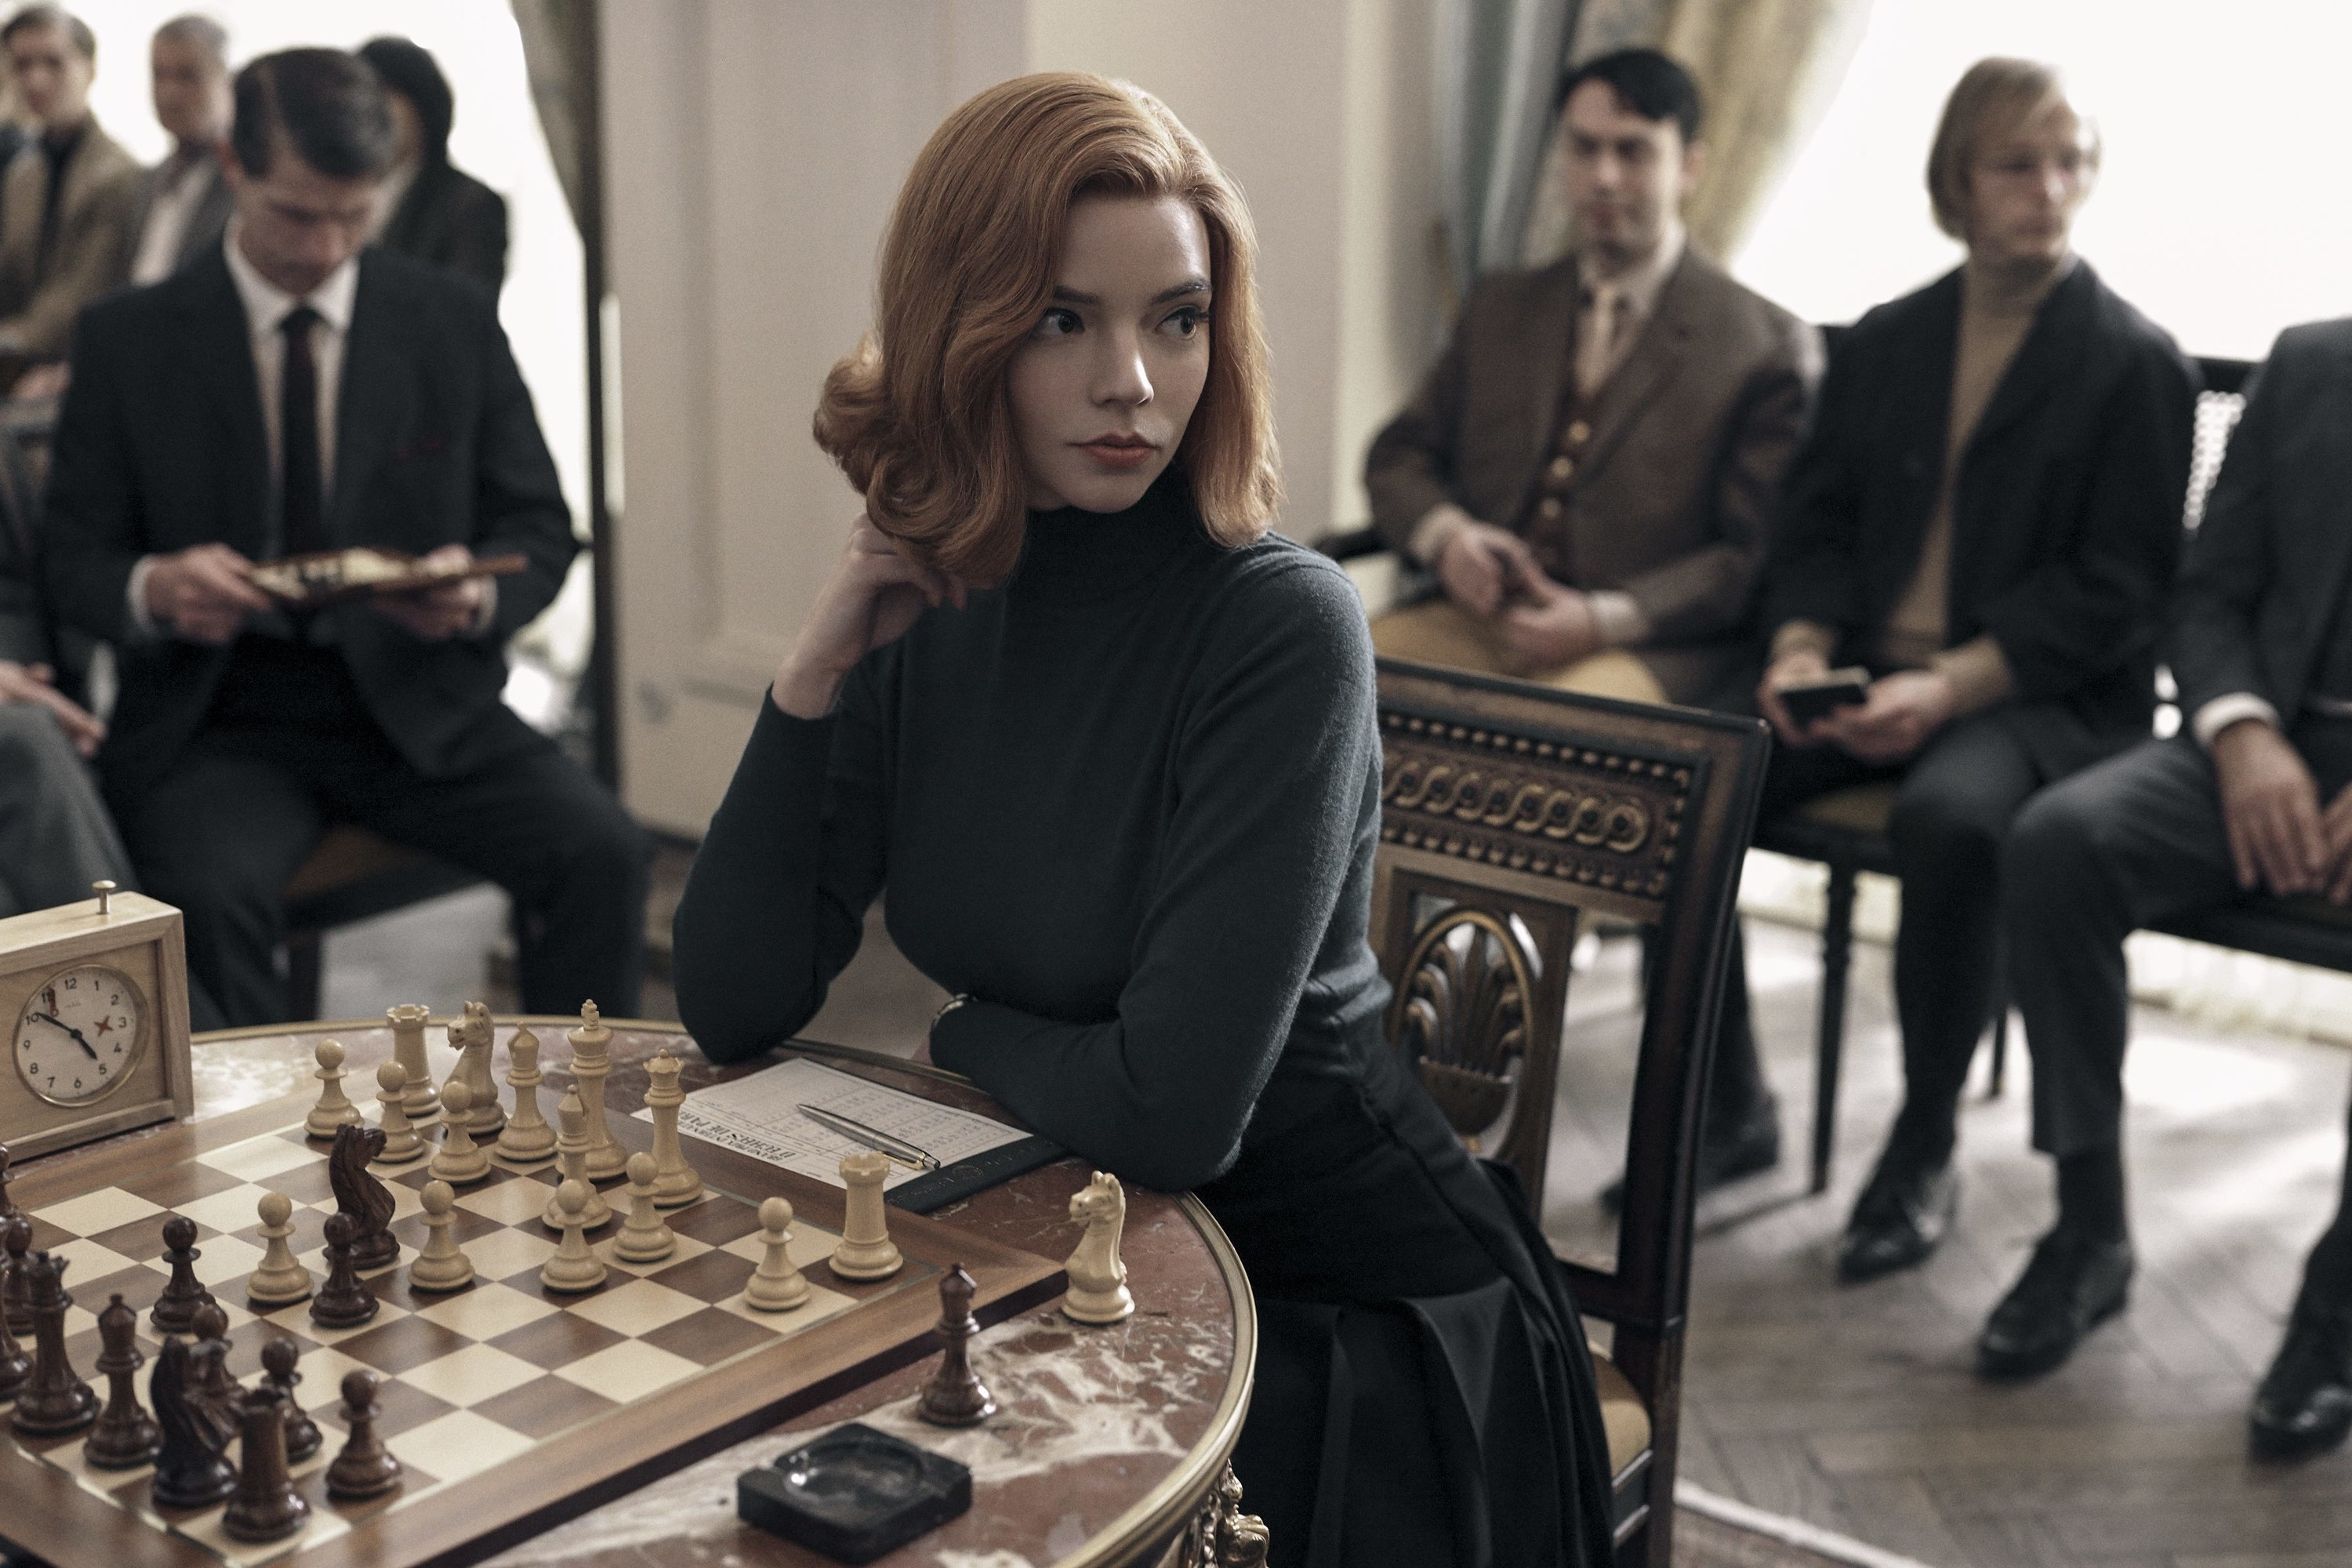 Anya Taylor-Joy as Beth Harmon in The Queen's Gambit sitting during a chess match